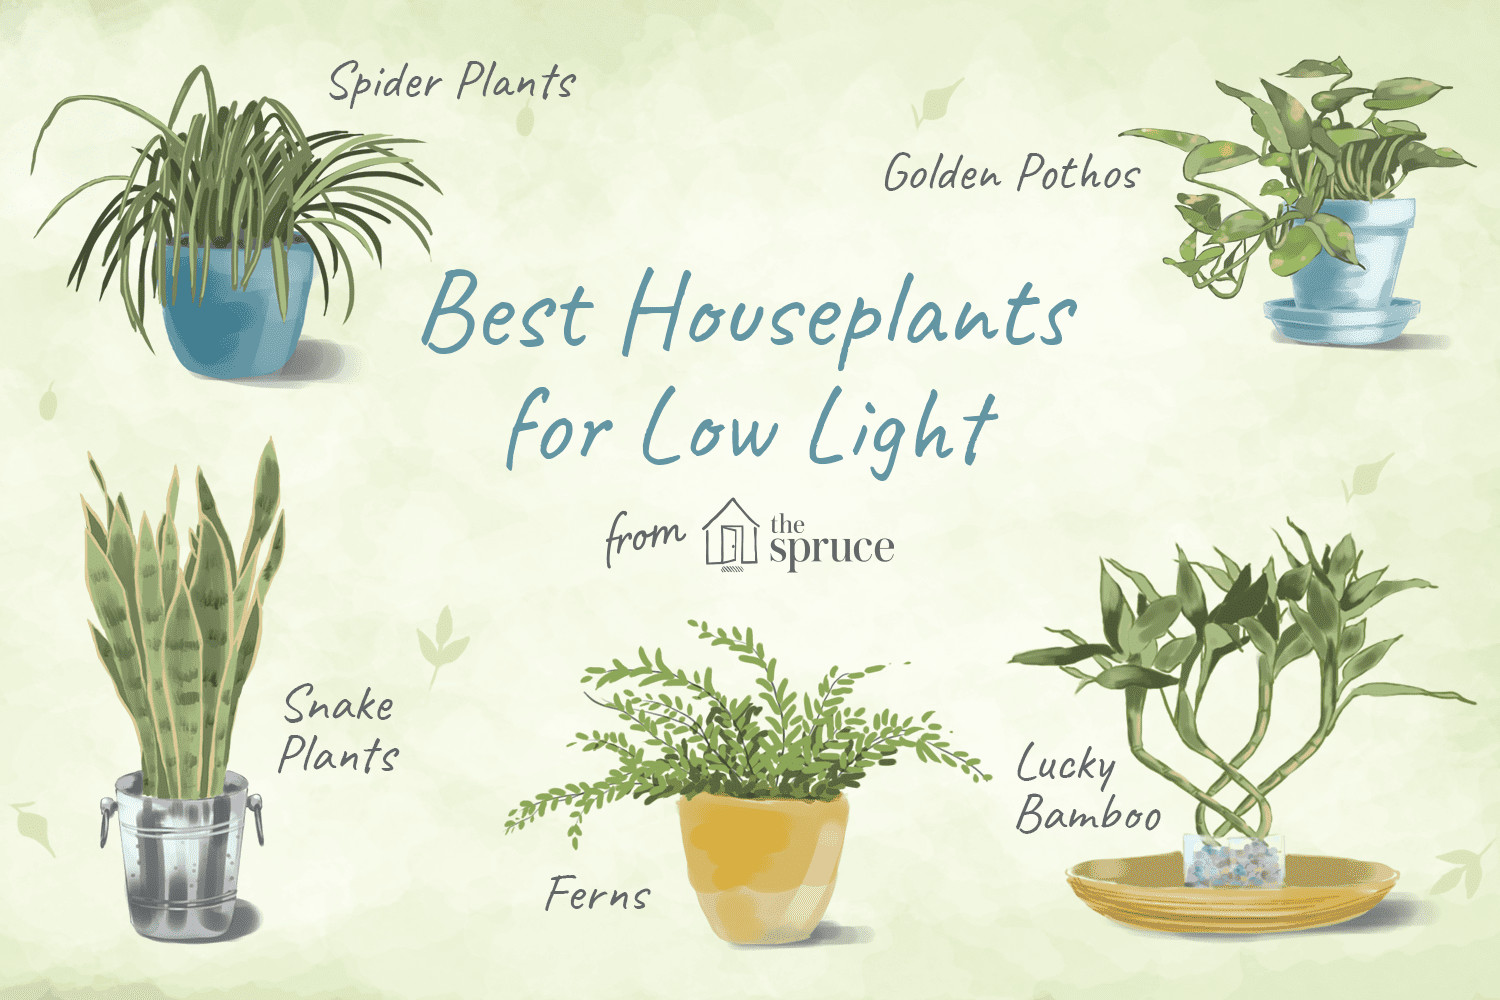 lucky bamboo vases pots of 7 houseplants for low light conditions with low light conditions houseplants 1902917 final 5b218f0deb97de0036d2be2f